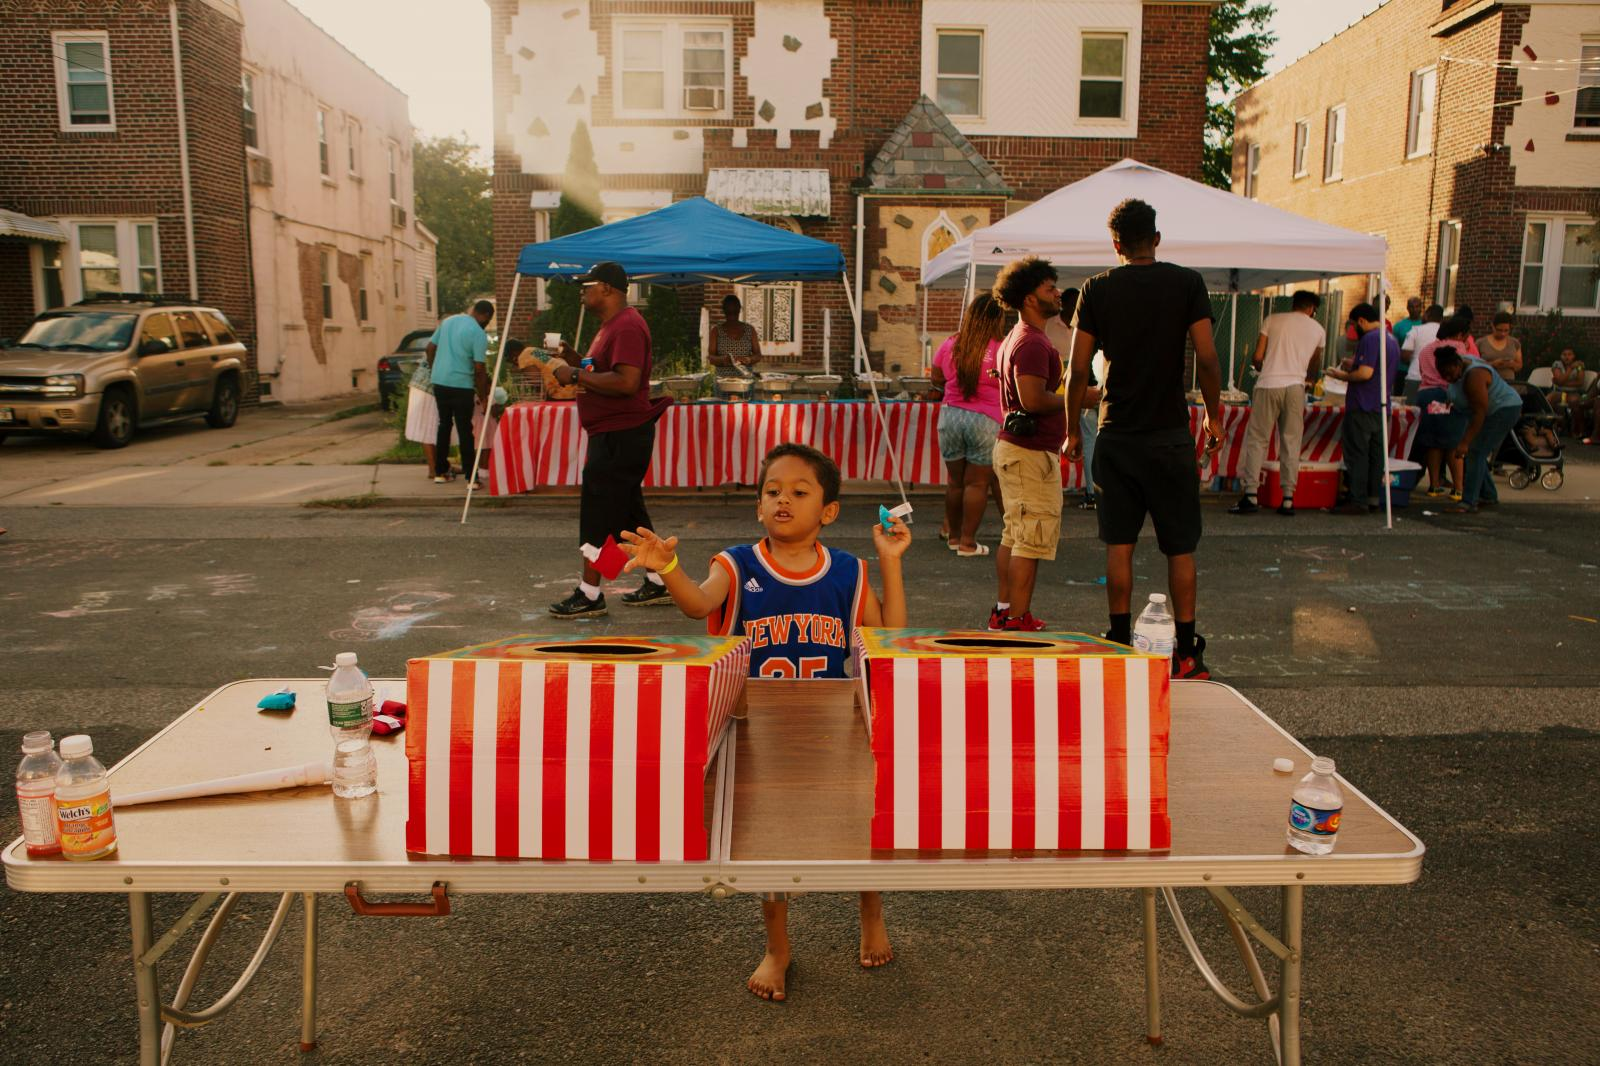 Isaac Walters, 5, plays Cornhole at the block party hosted by The Shiloh Baptist Church of Jamaica in Queens, New York.